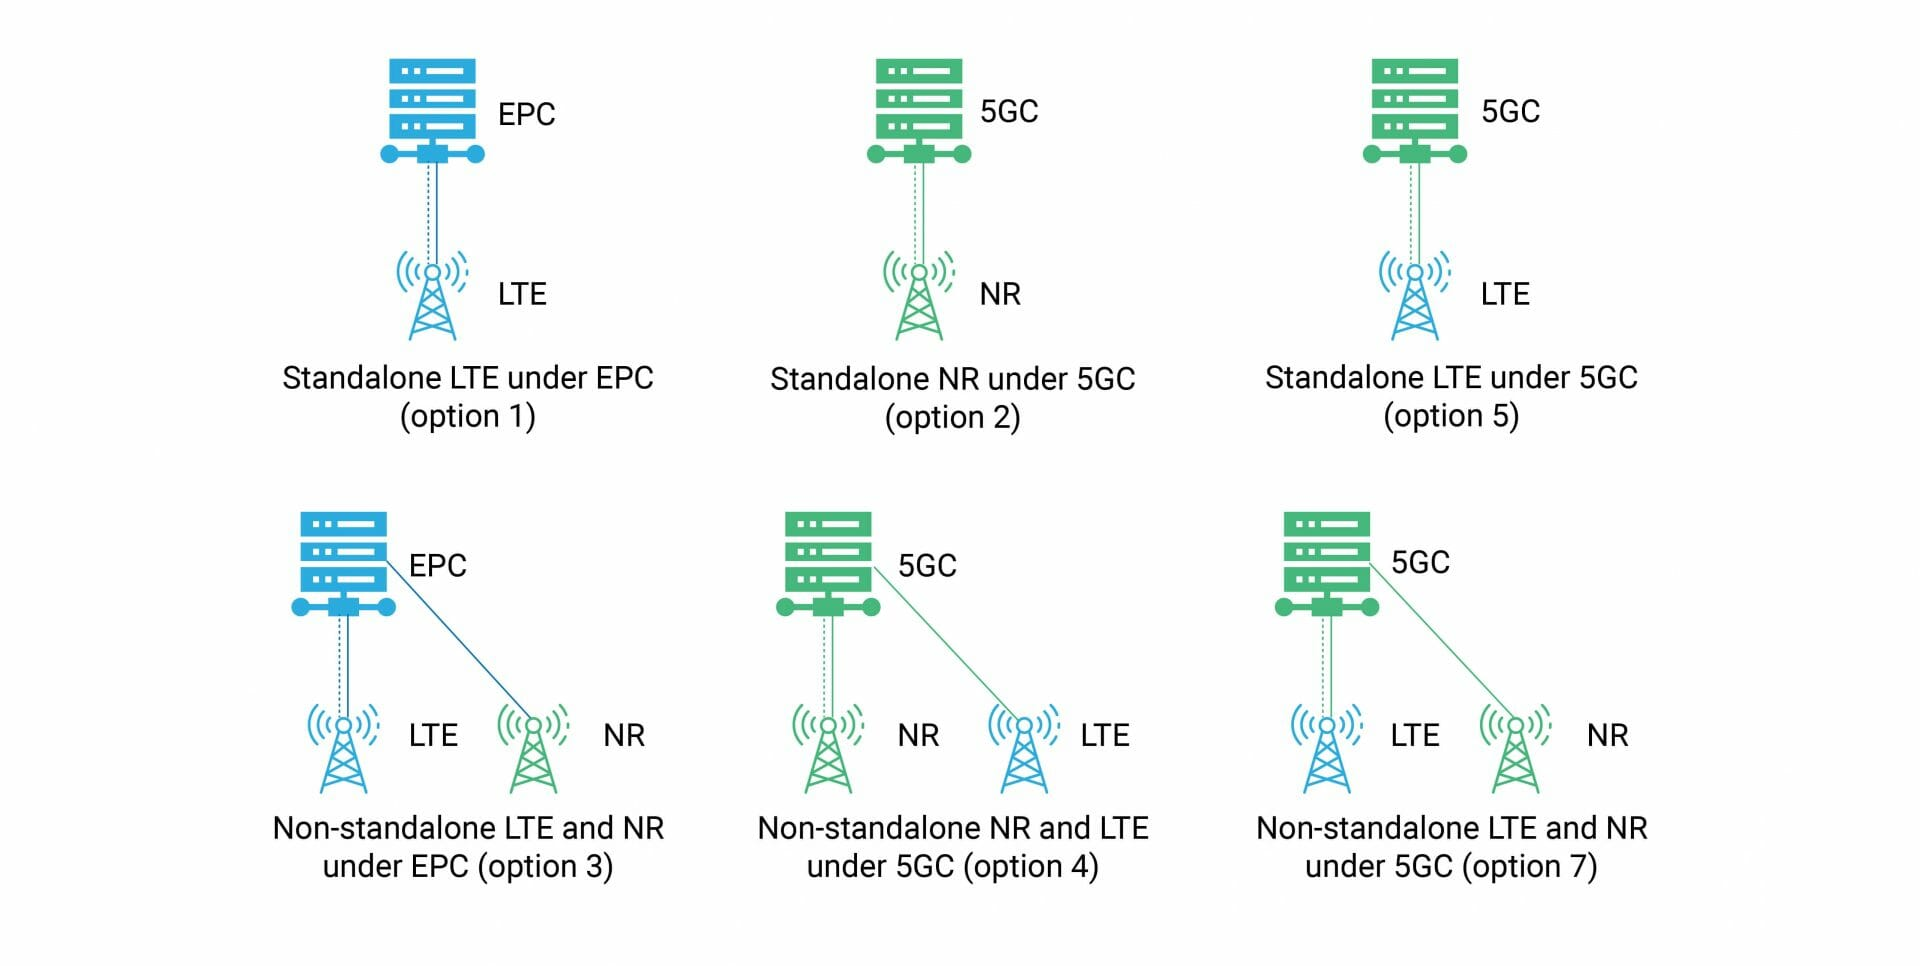 5G software network functions using edge computing